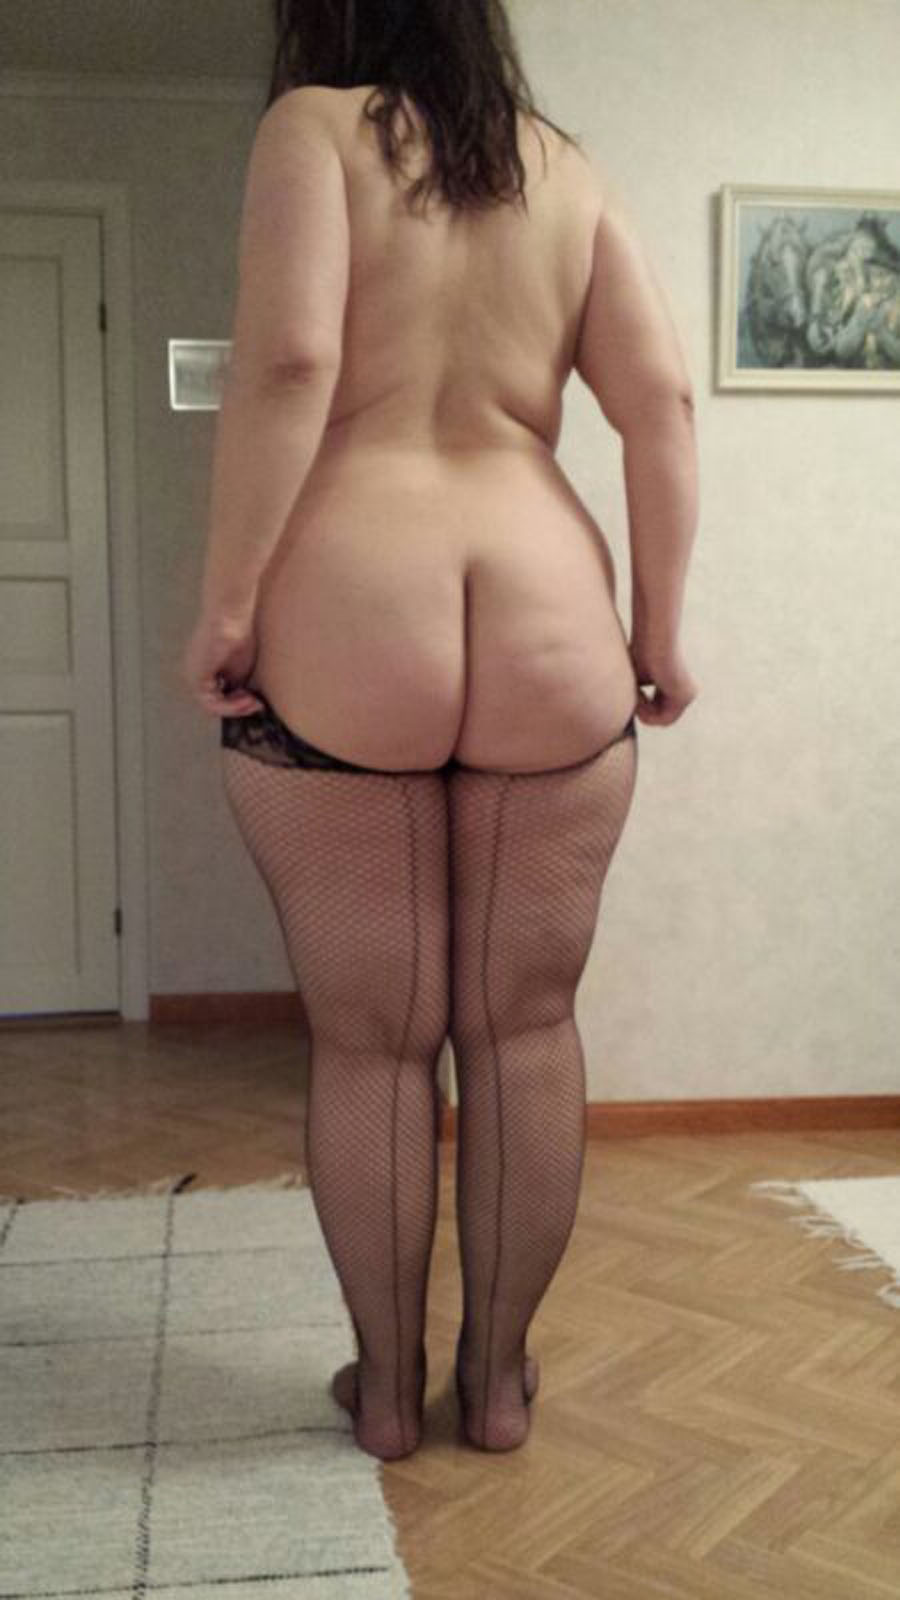 Naked women with phat ass photo 463